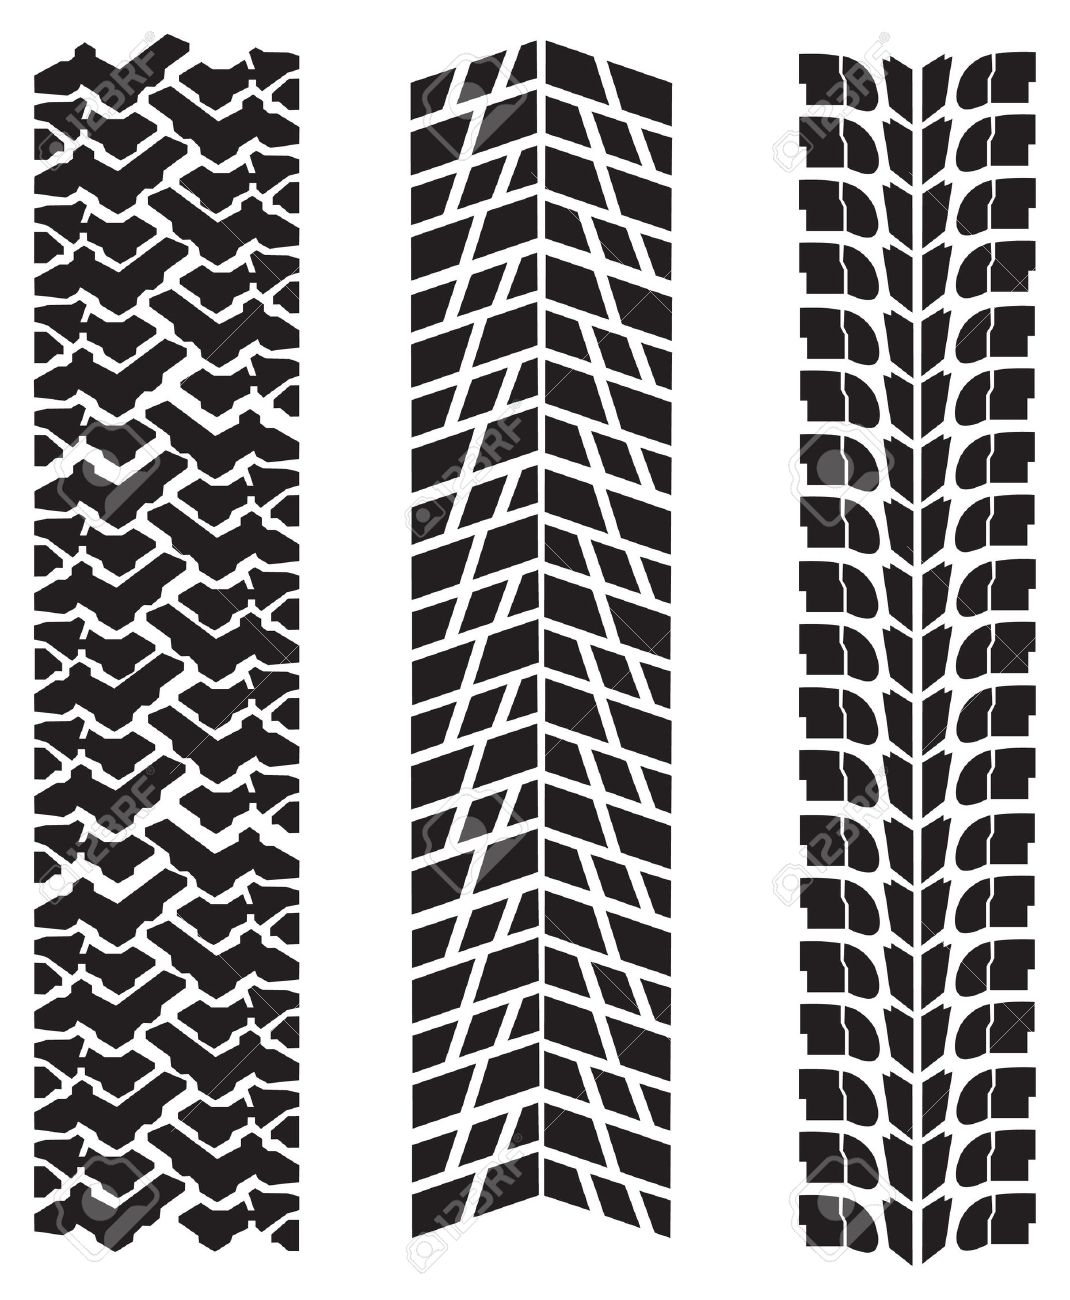 Tire tread patterns clipart png freeuse library Vector Tire Royalty Free Cliparts, Vectors, And Stock Illustration ... png freeuse library